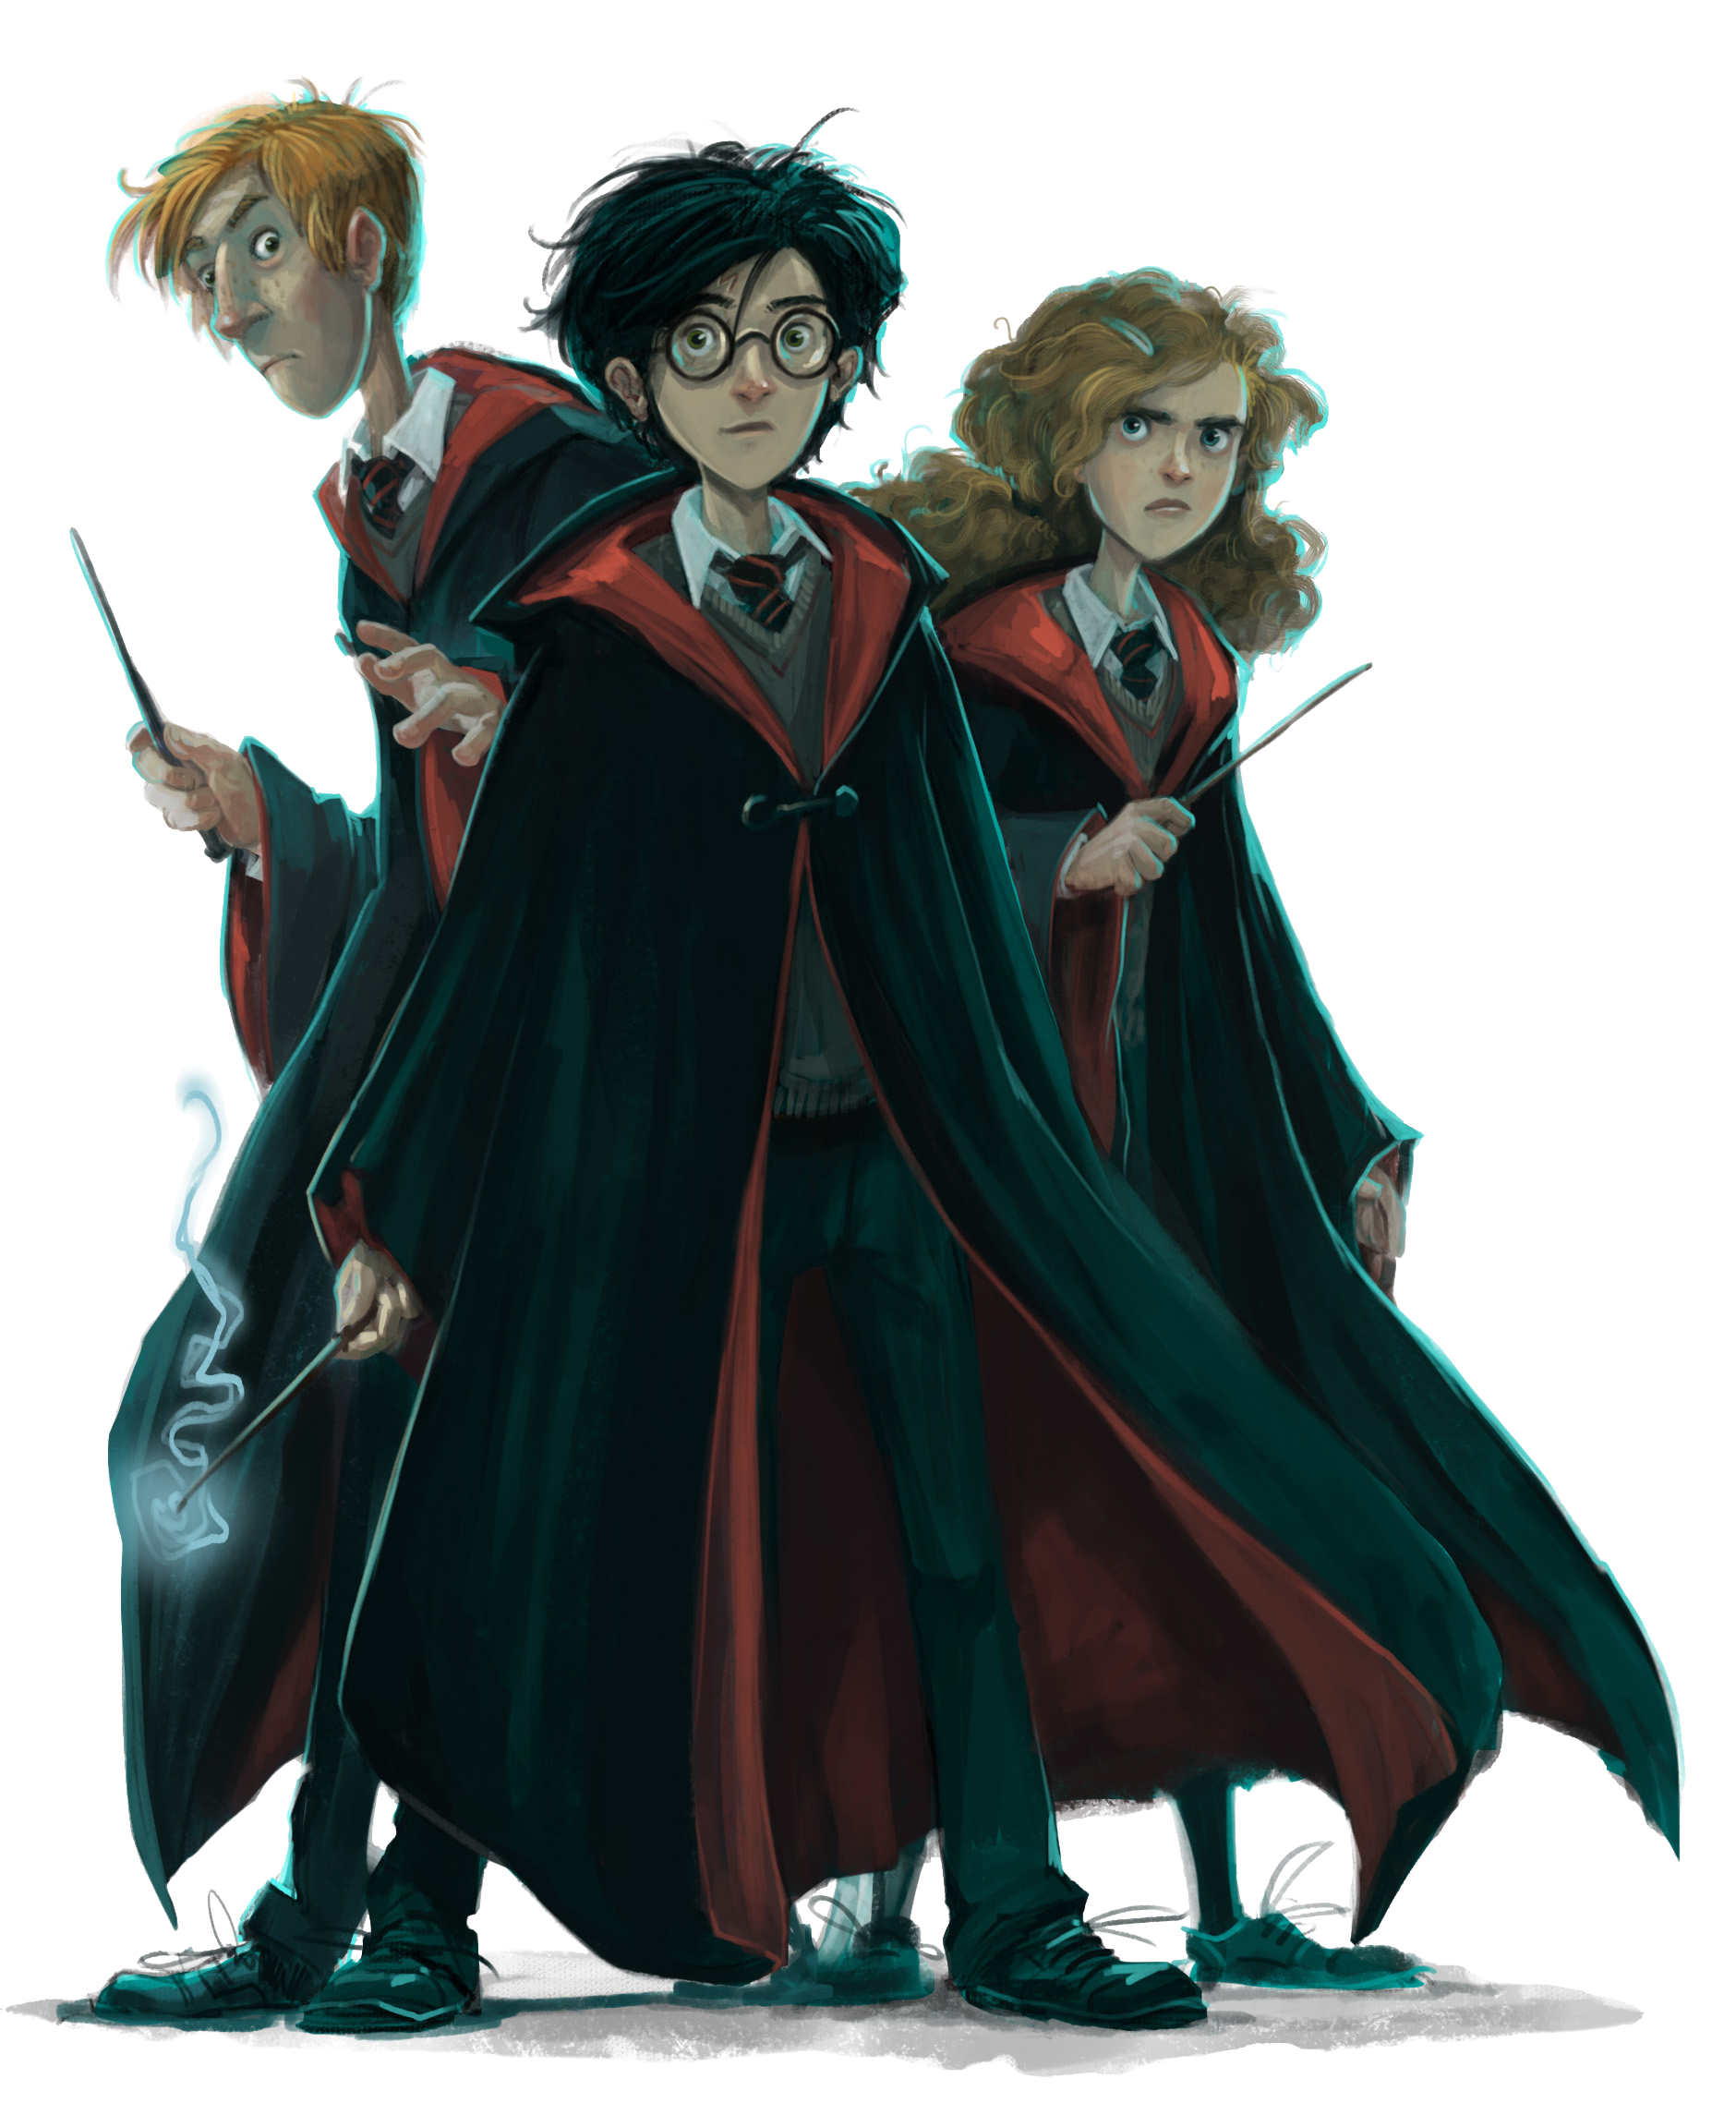 Harry Potter Book Cover Png : Image trio bloomsbury harry potter wiki fandom